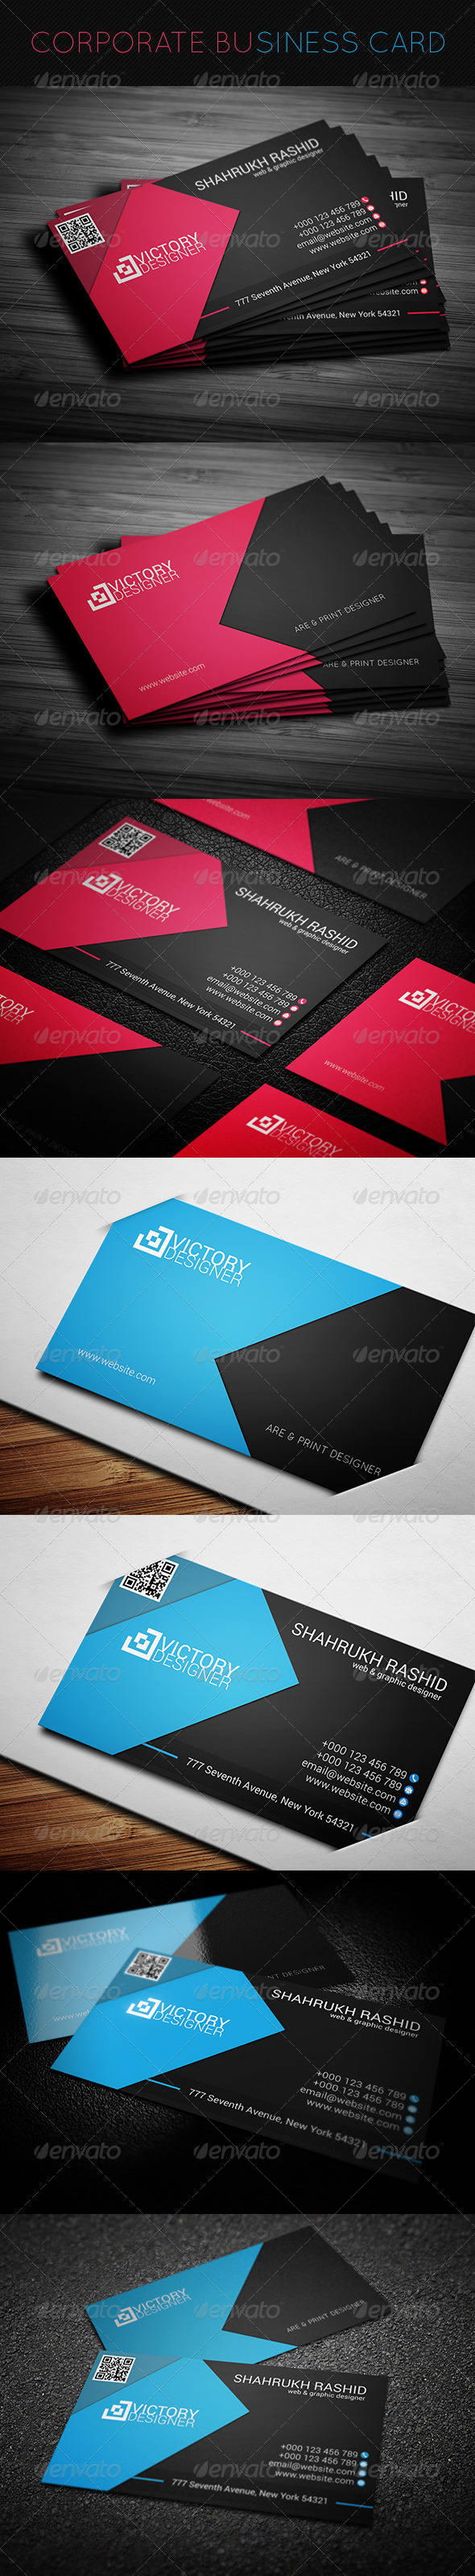 GraphicRiver Corporate Business Card 7696837